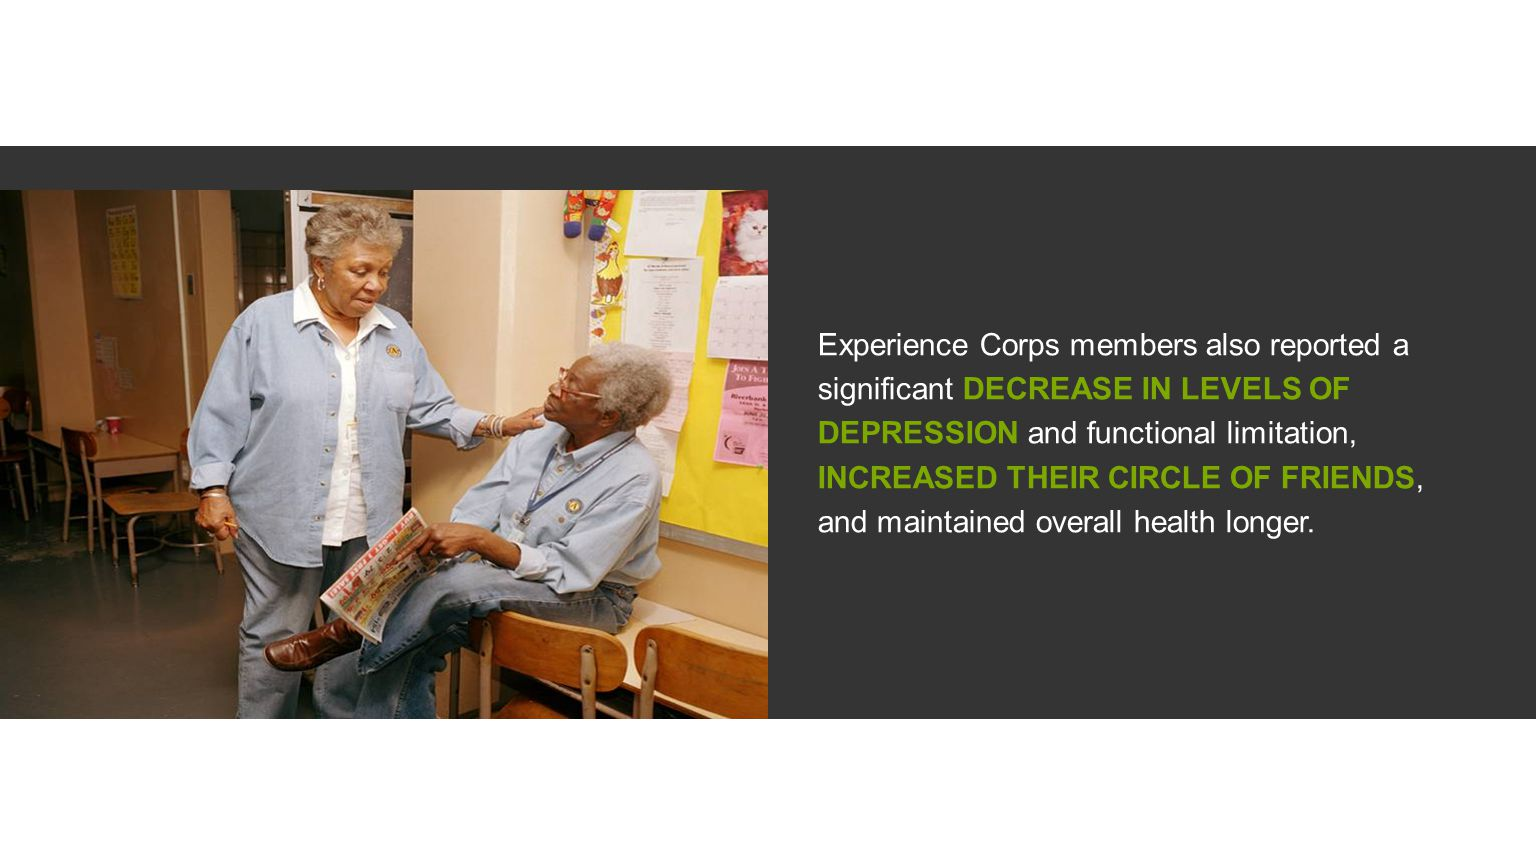 Experience Corps members also reported a significant DECREASE IN LEVELS OF DEPRESSION and functional limitation, INCREASED THEIR CIRCLE OF FRIENDS, and maintained overall health longer.